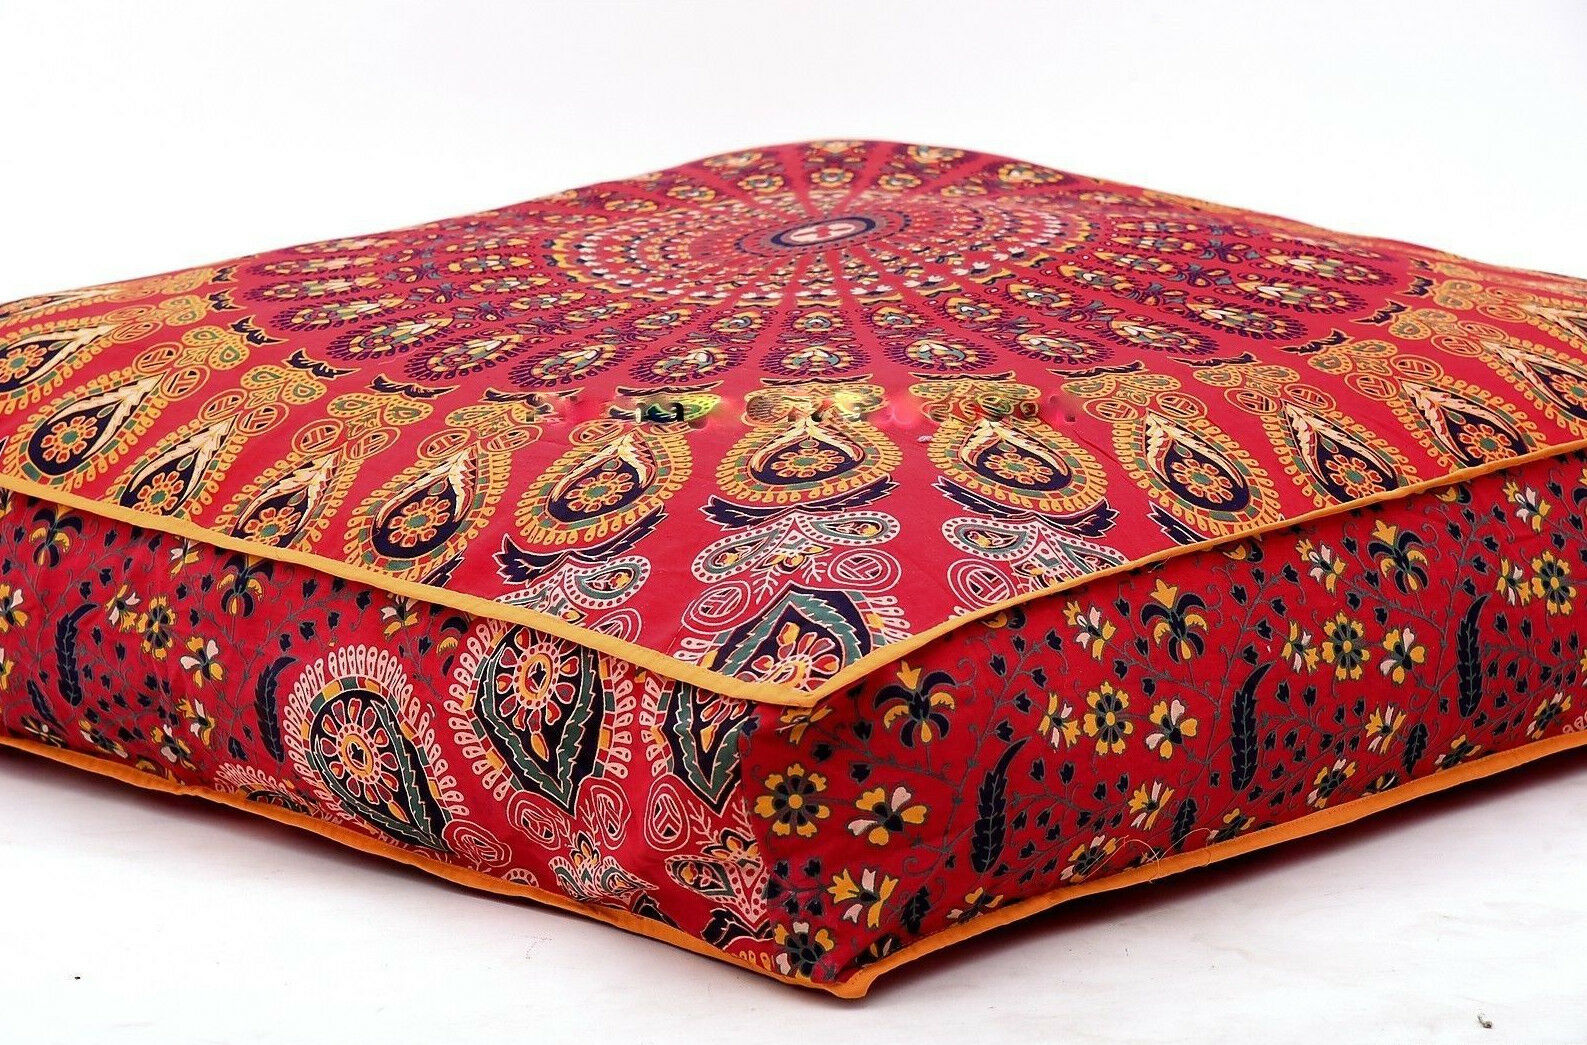 Indian Daybed Big Seating Mandala Floor Pillow Cover Pouf Cu